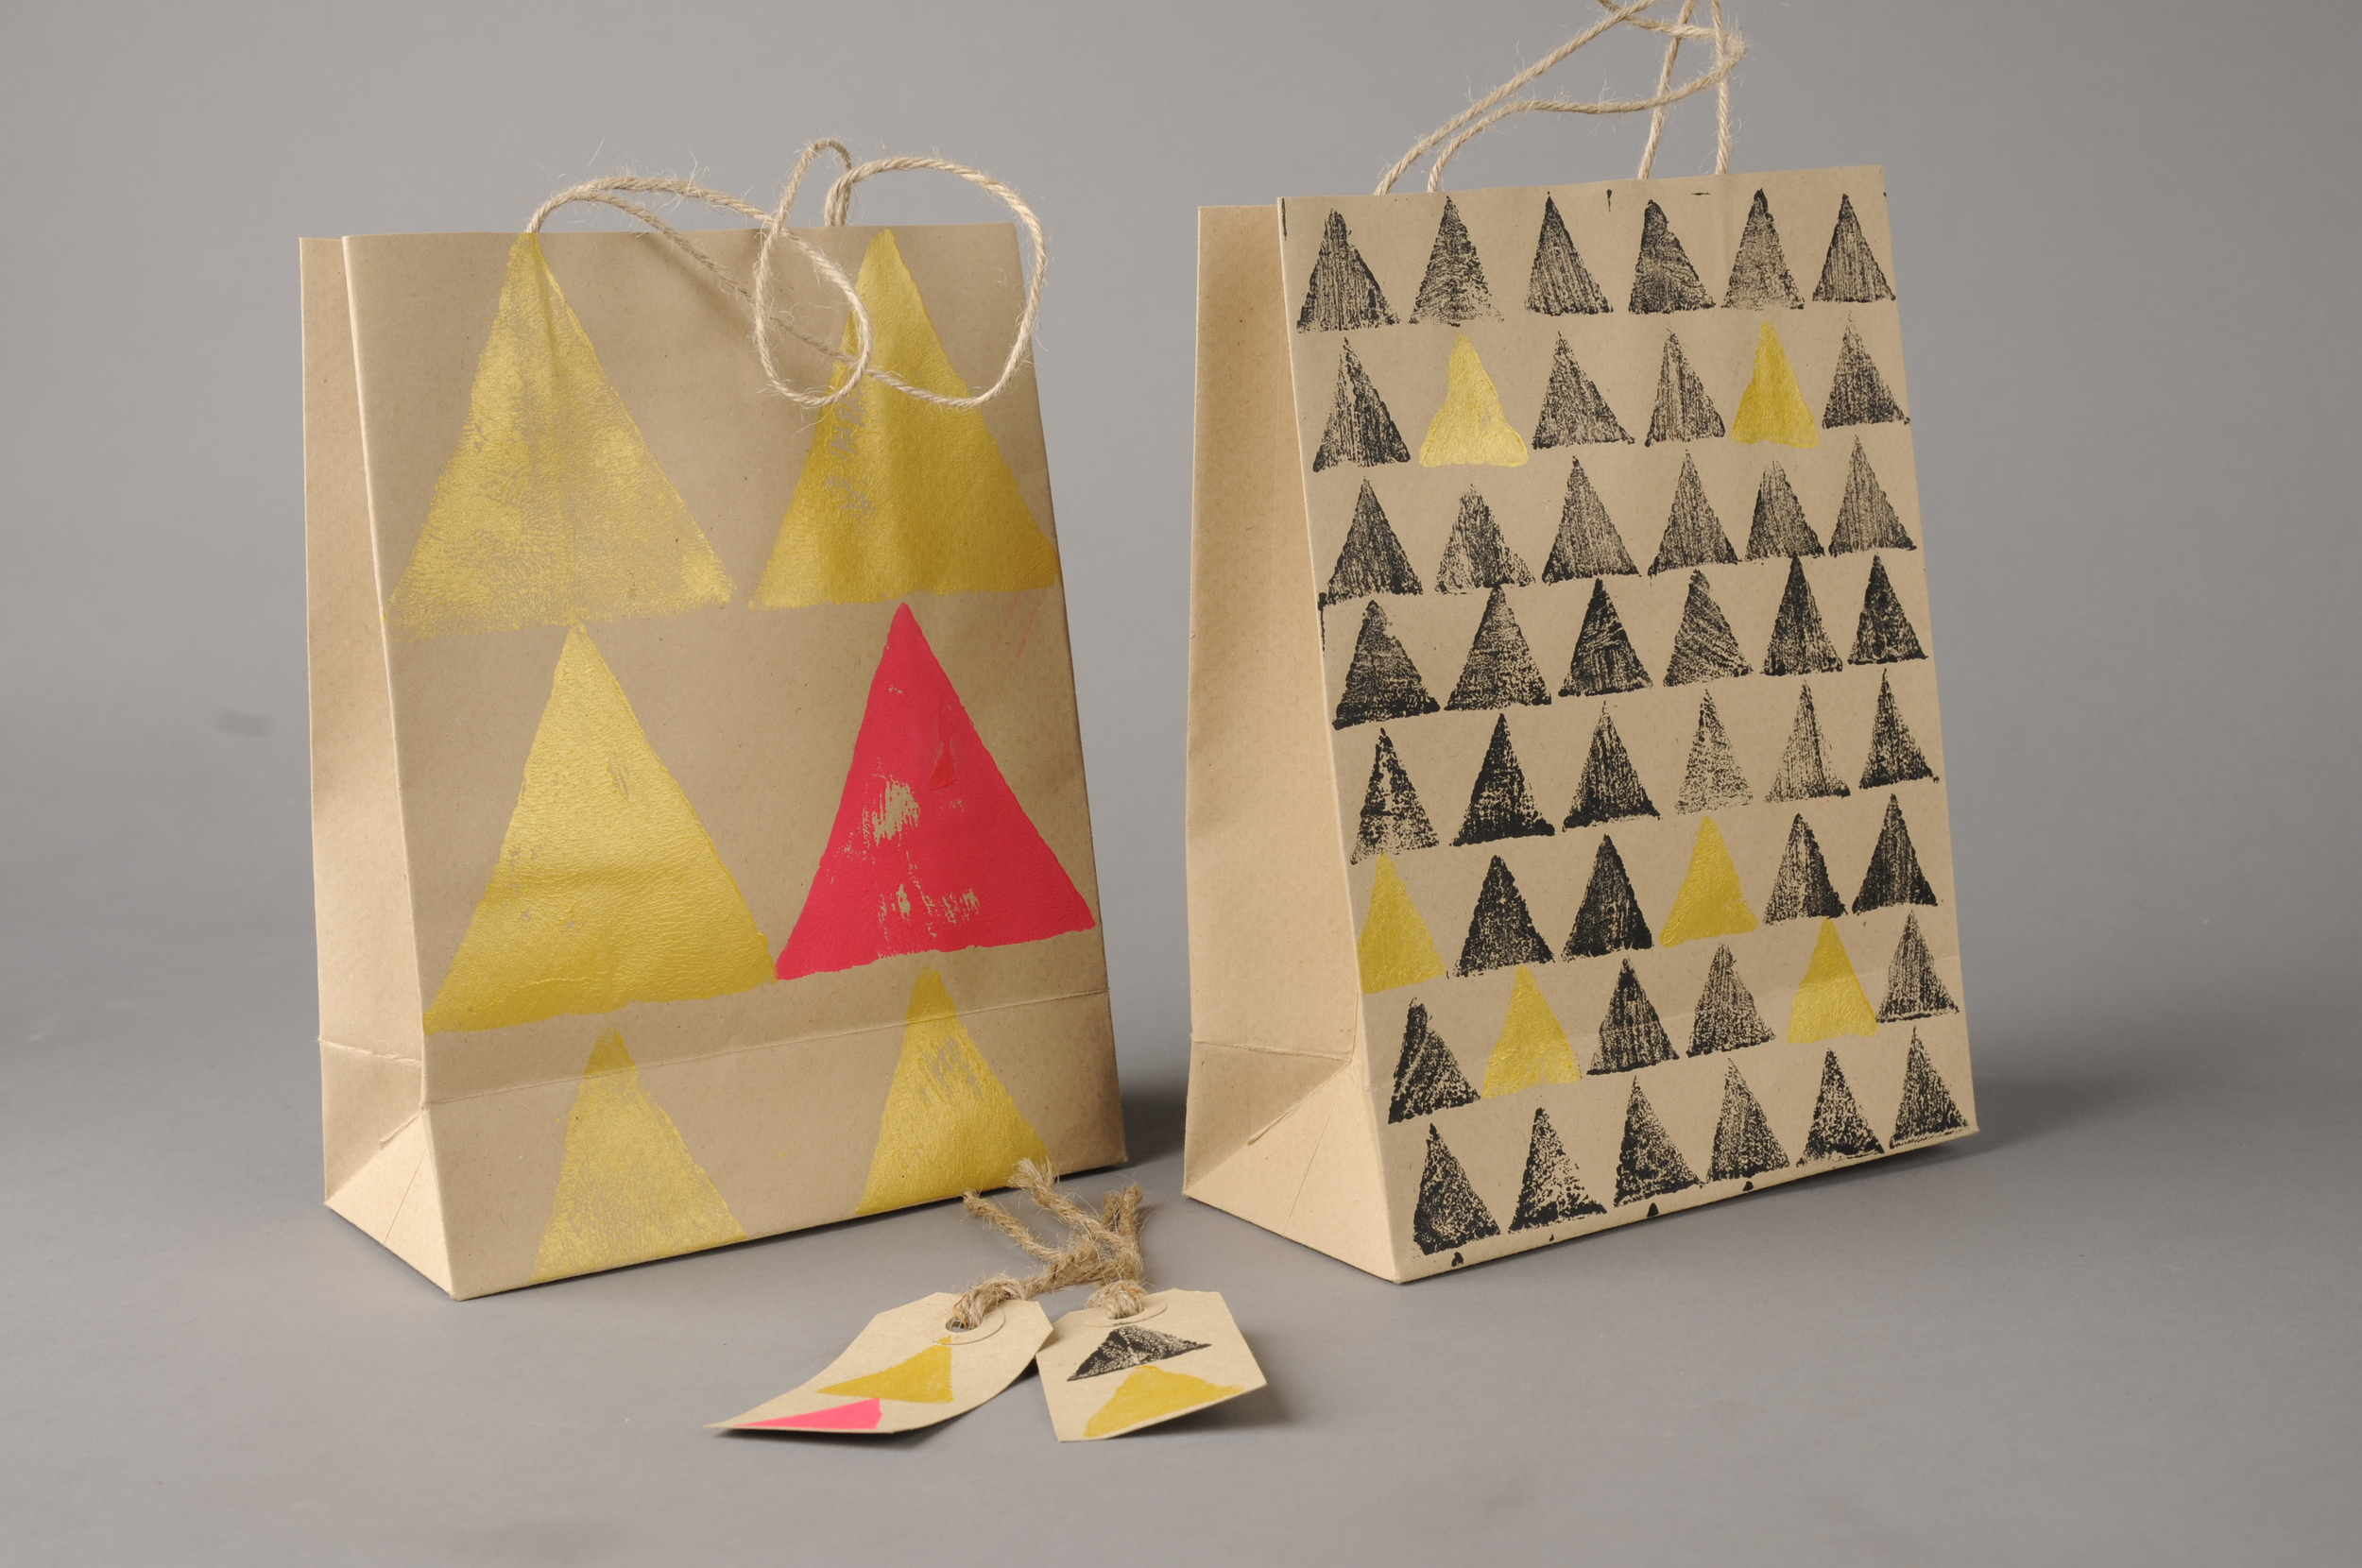 Block printed gift bags on 90gsm 100% recycled envelopes, with tags  £4 each  15x12x6cm approx